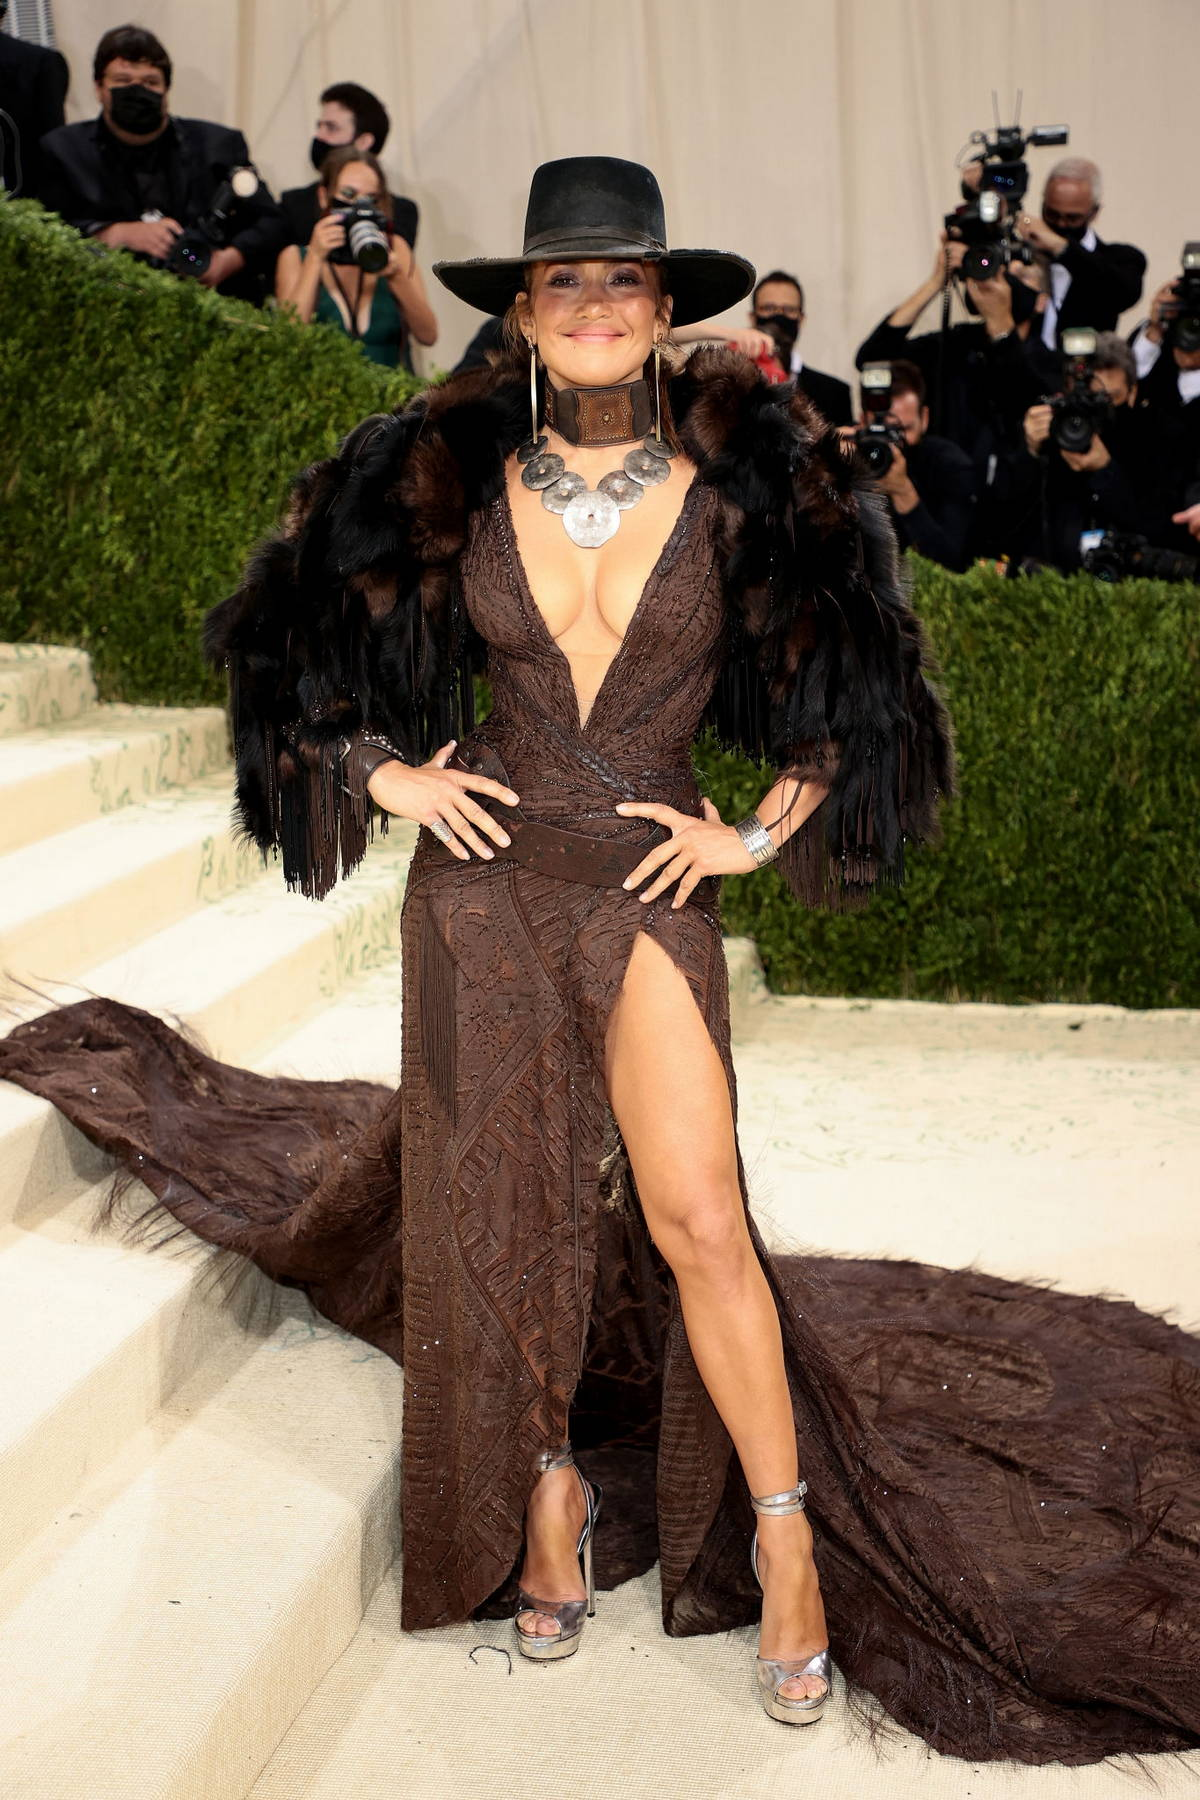 Jennifer Lopez attends The Met Gala Celebrating In America: A Lexicon Of Fashion at Metropolitan Museum of Art in New York City